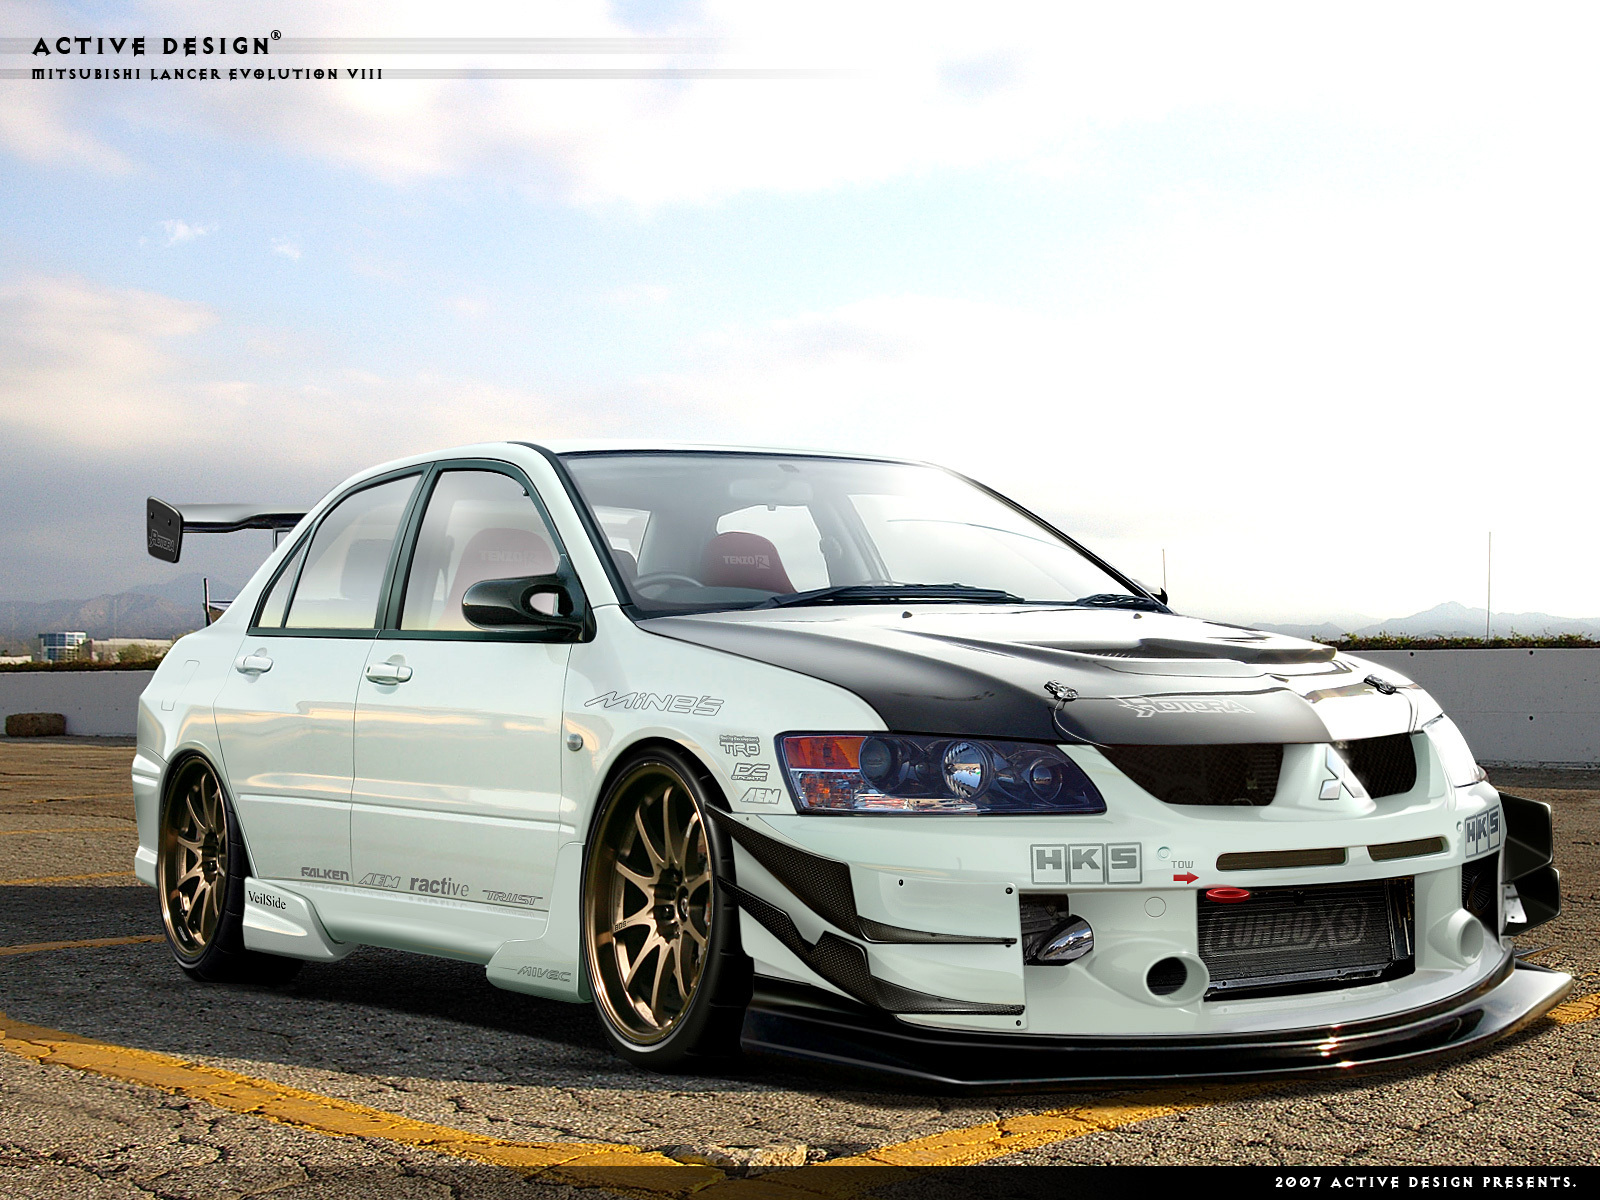 Mitsubishi Lancer Evolution Images More Evolutionization